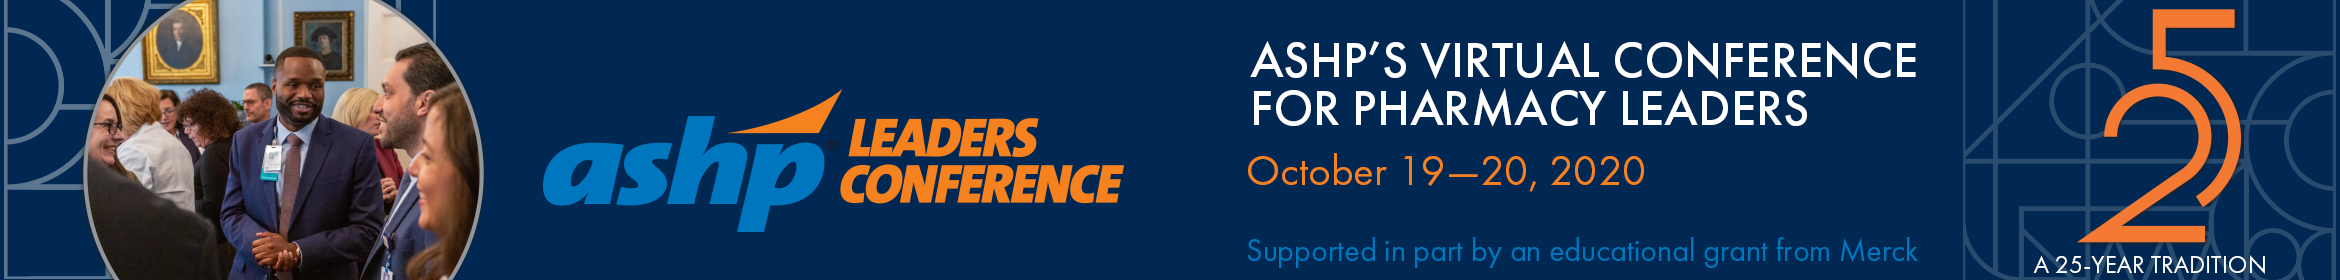 ASHP Leaders Conference Main banner